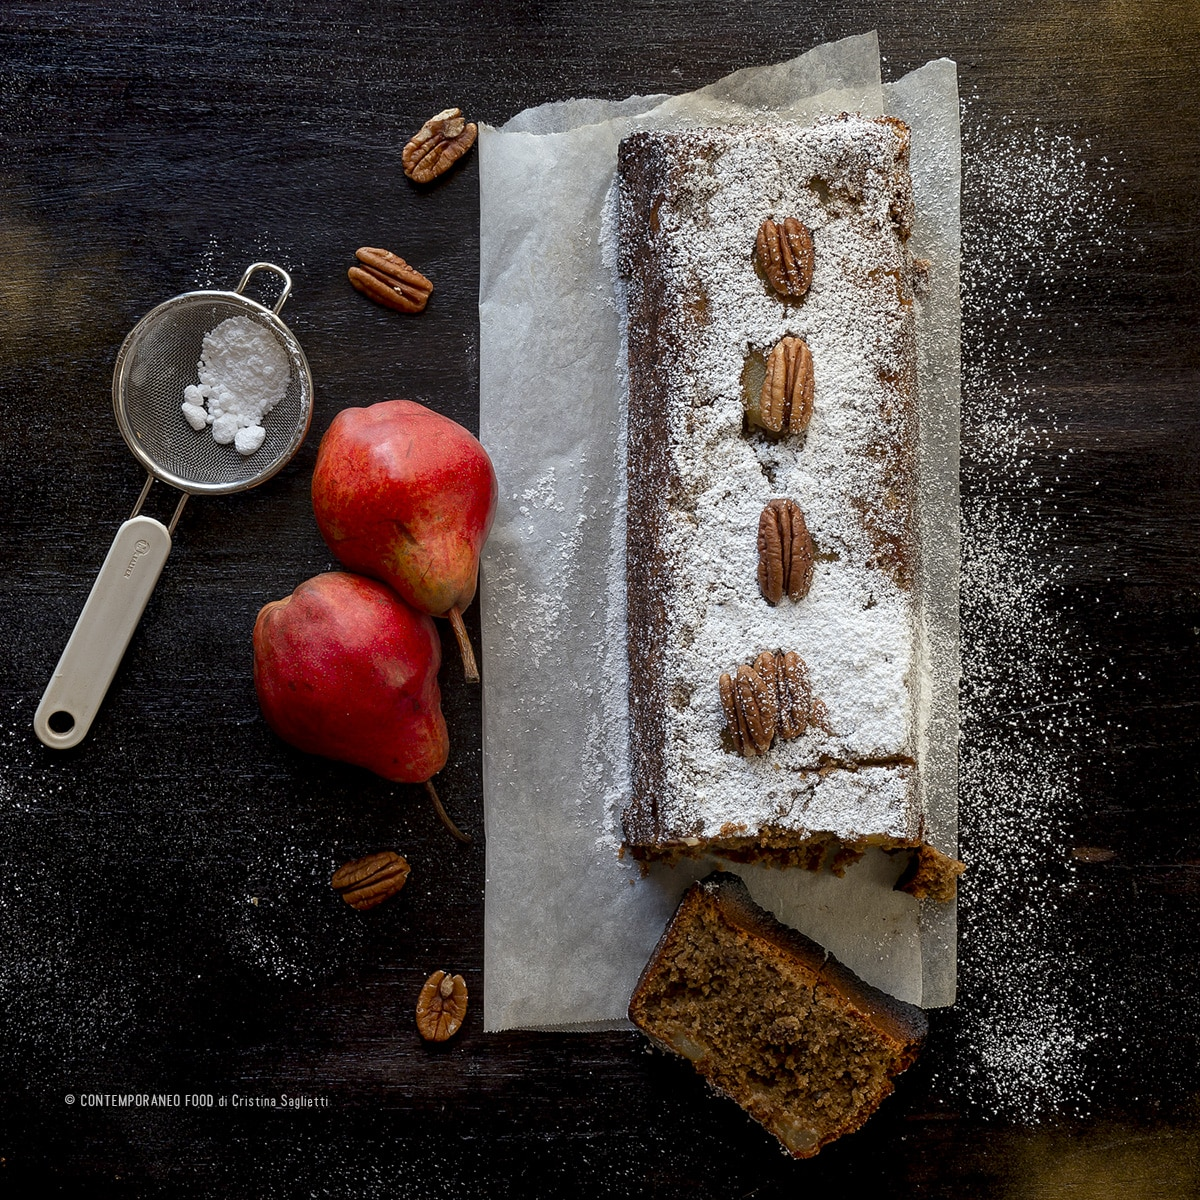 plumcake-farina-di-avena-caffè-noci-pere-farine-alternative-dolce-facile-contemporaneo-food